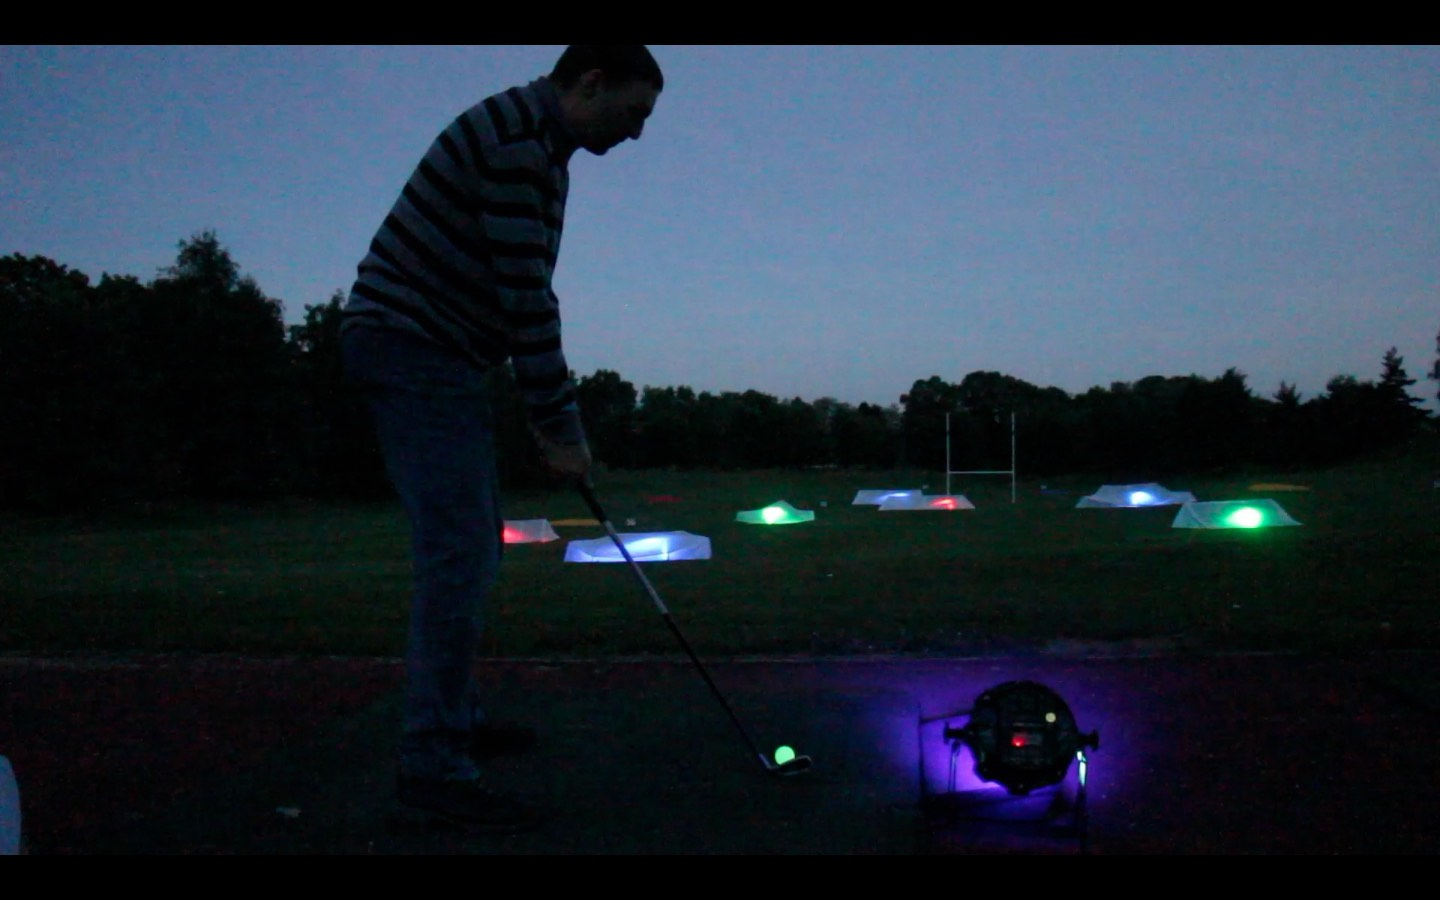 Starlight Golf_Afterwork ABB_Maison Blanche